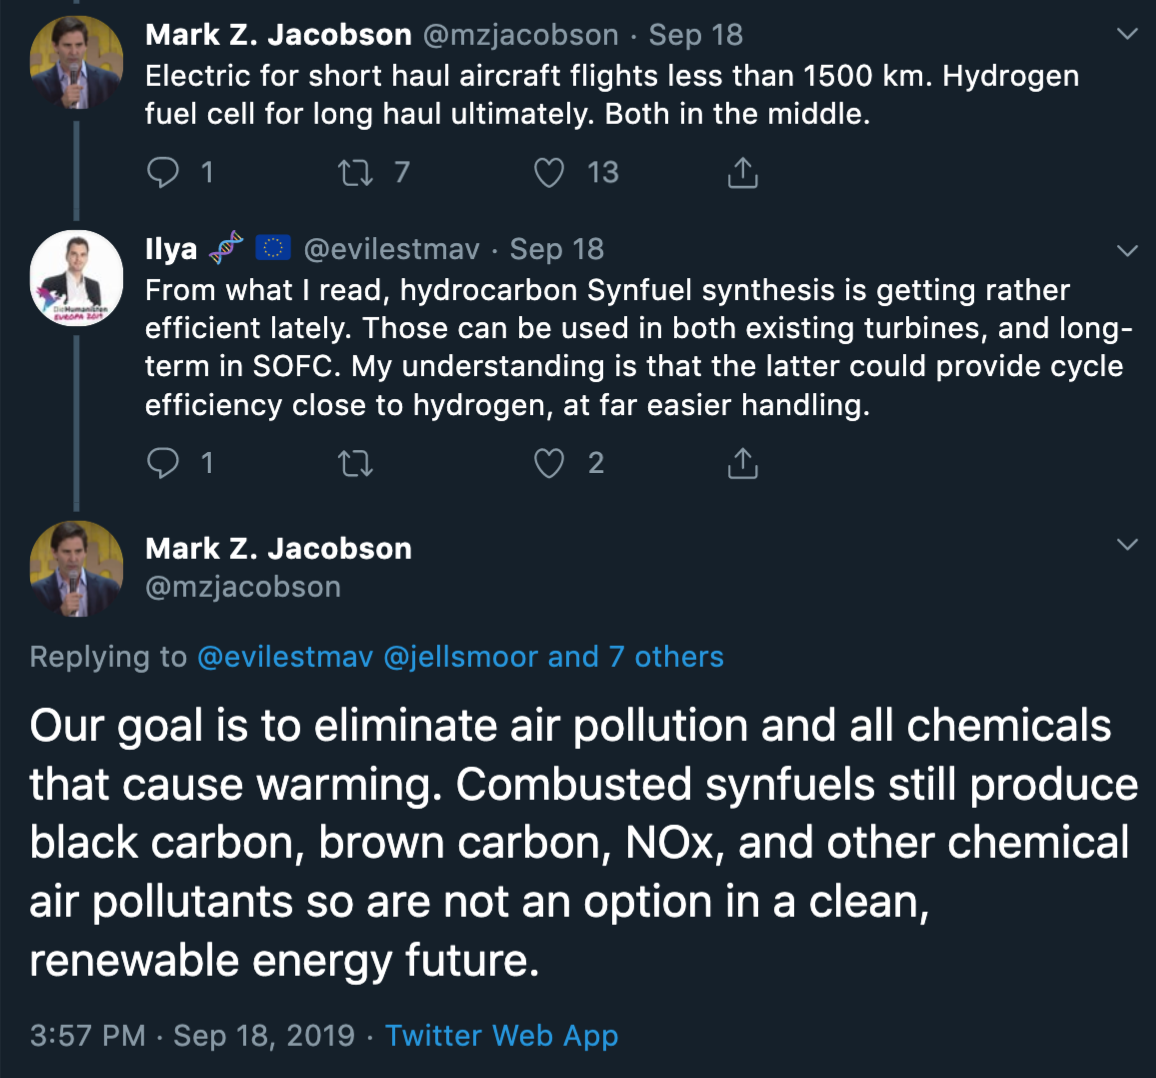 Mark Z. Jacobson twitter thread regarding hydrogen aviation